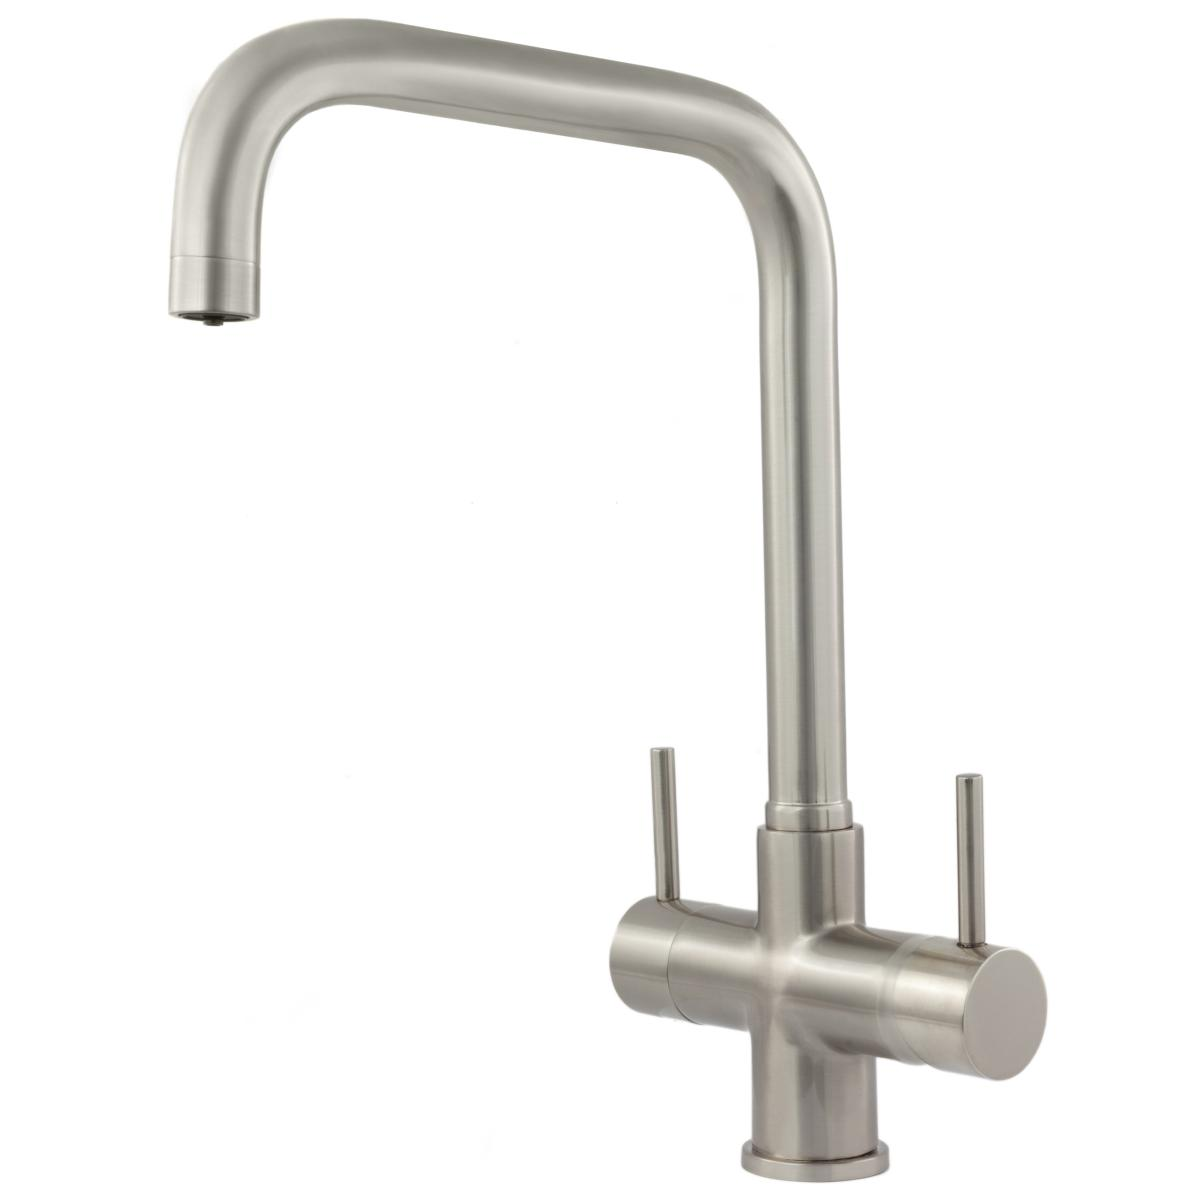 Monza 2 Lever 3 Way Kitchen Filter Tap Brushed Steel